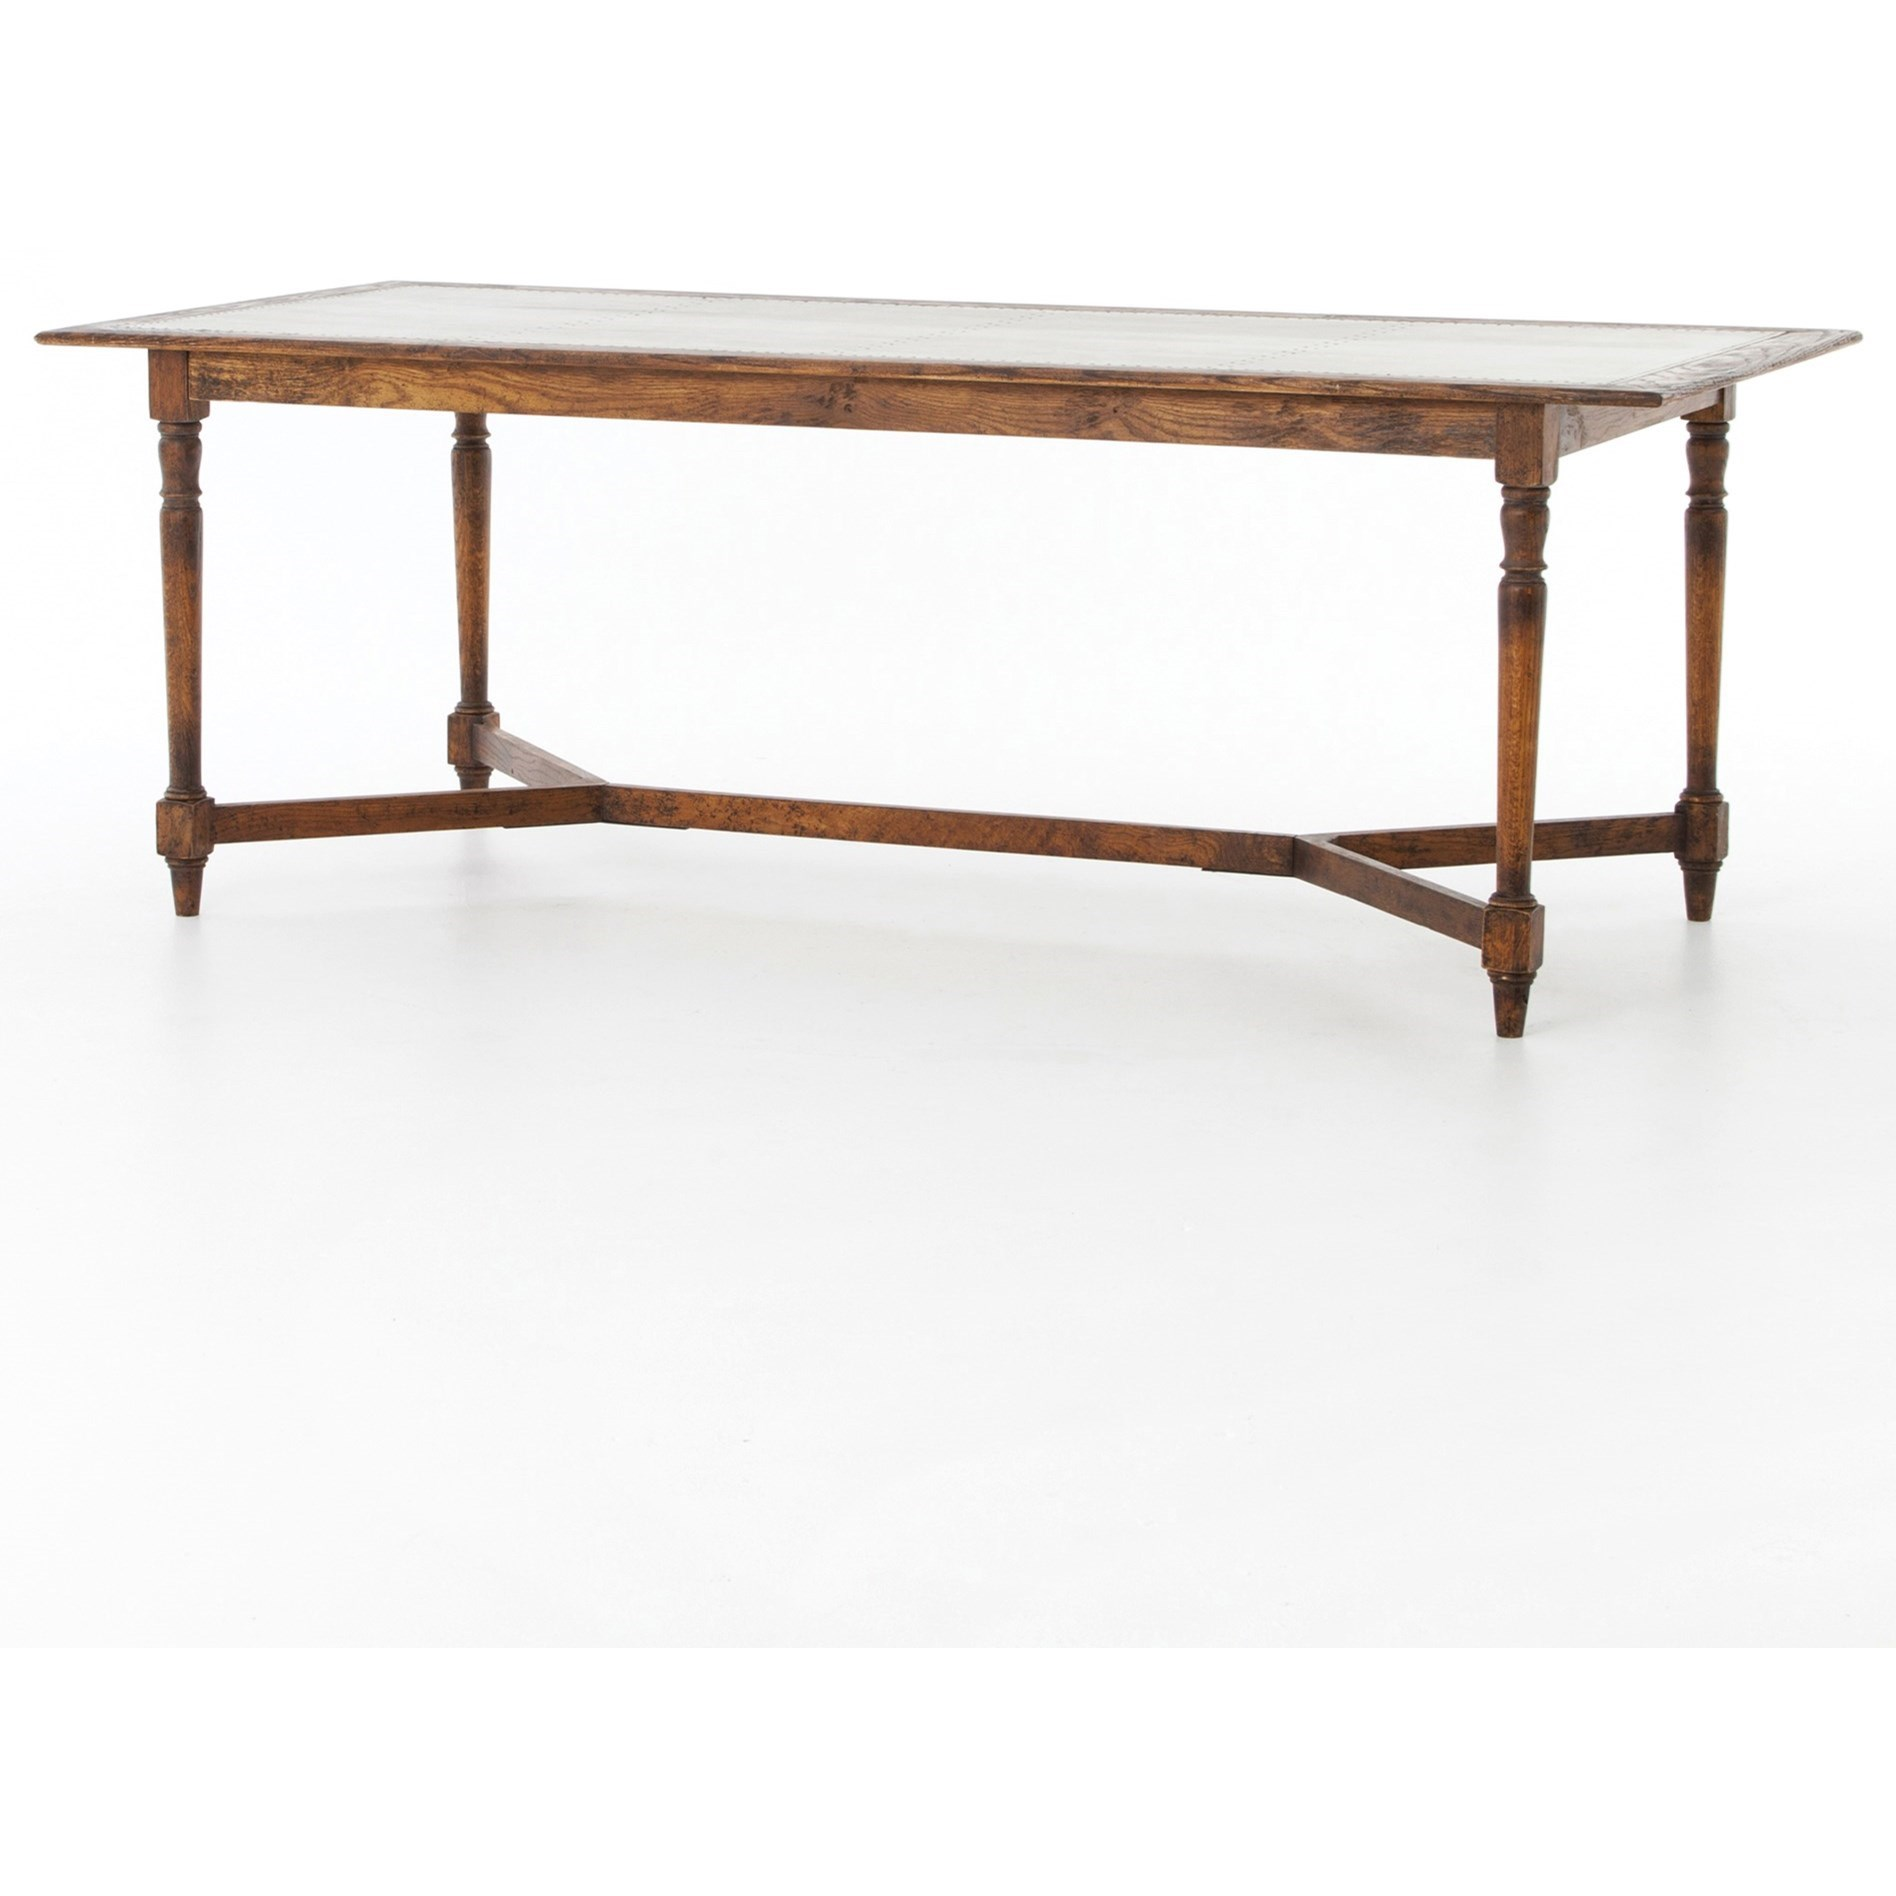 Four Hands Durham Sylvan Dining Table With Trestle Base Belfort Furniture Dining Tables